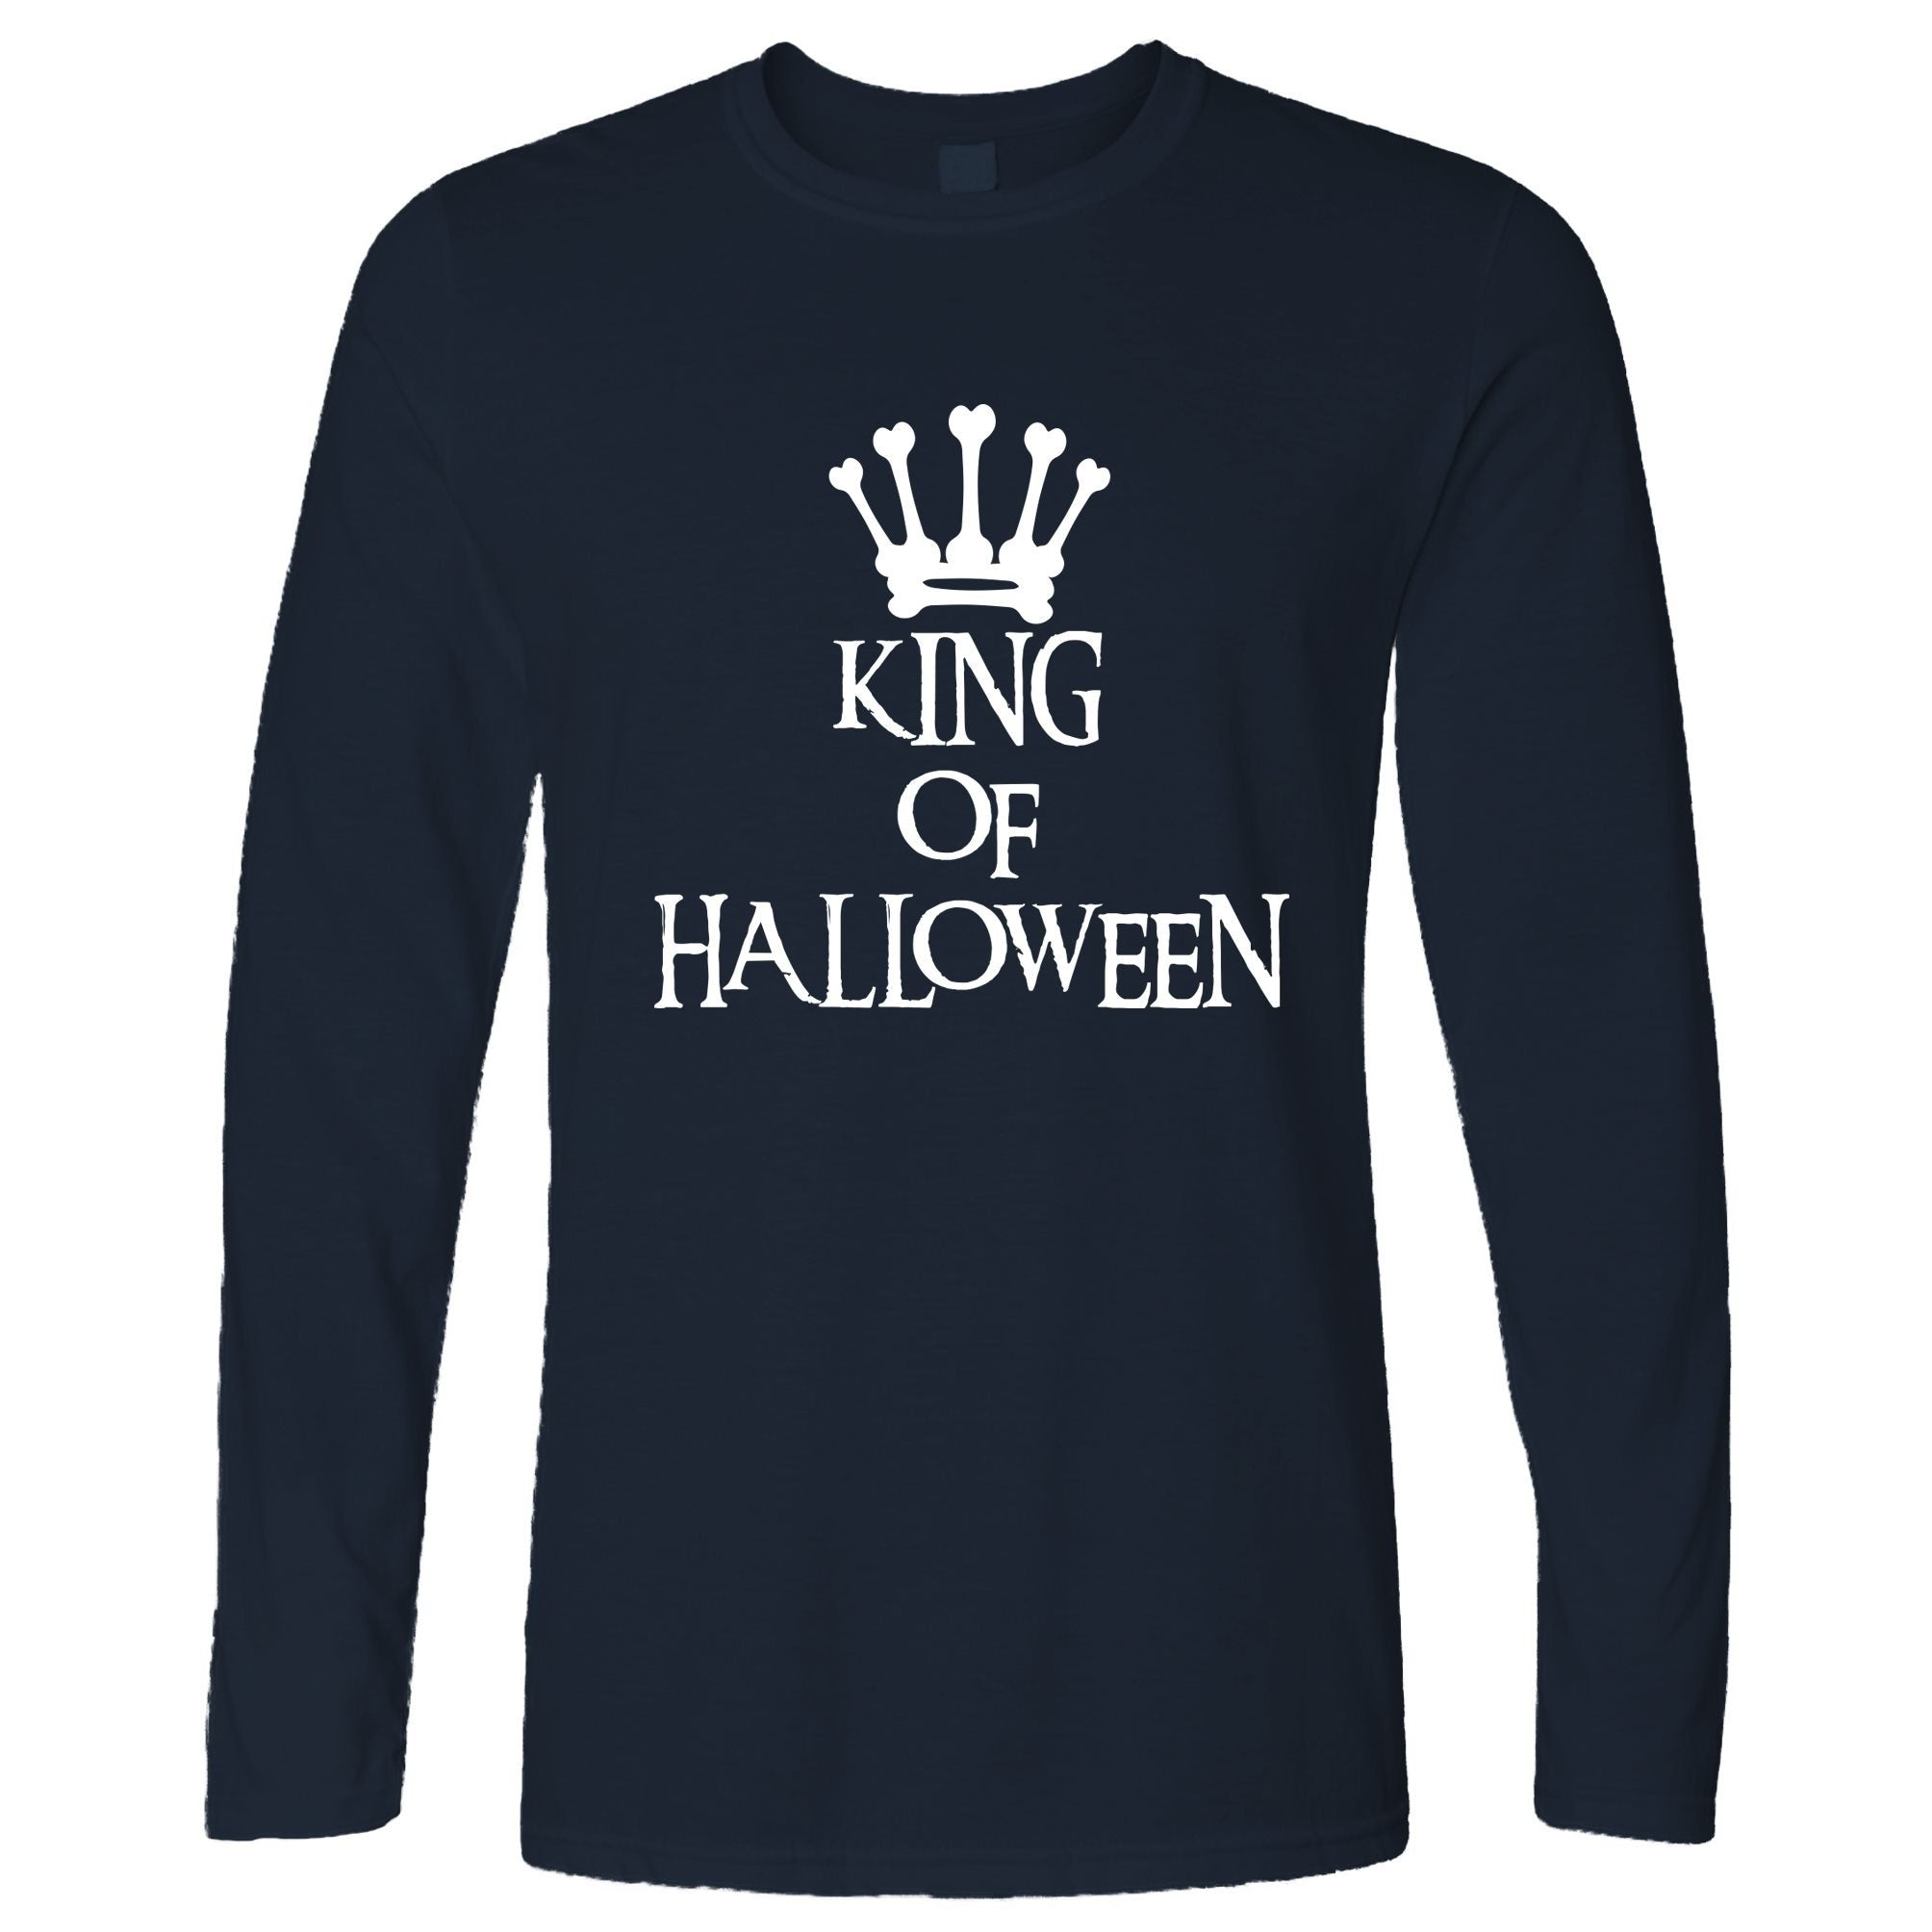 Novelty Spooky Long Sleeve King Of Halloween Crown T-Shirt